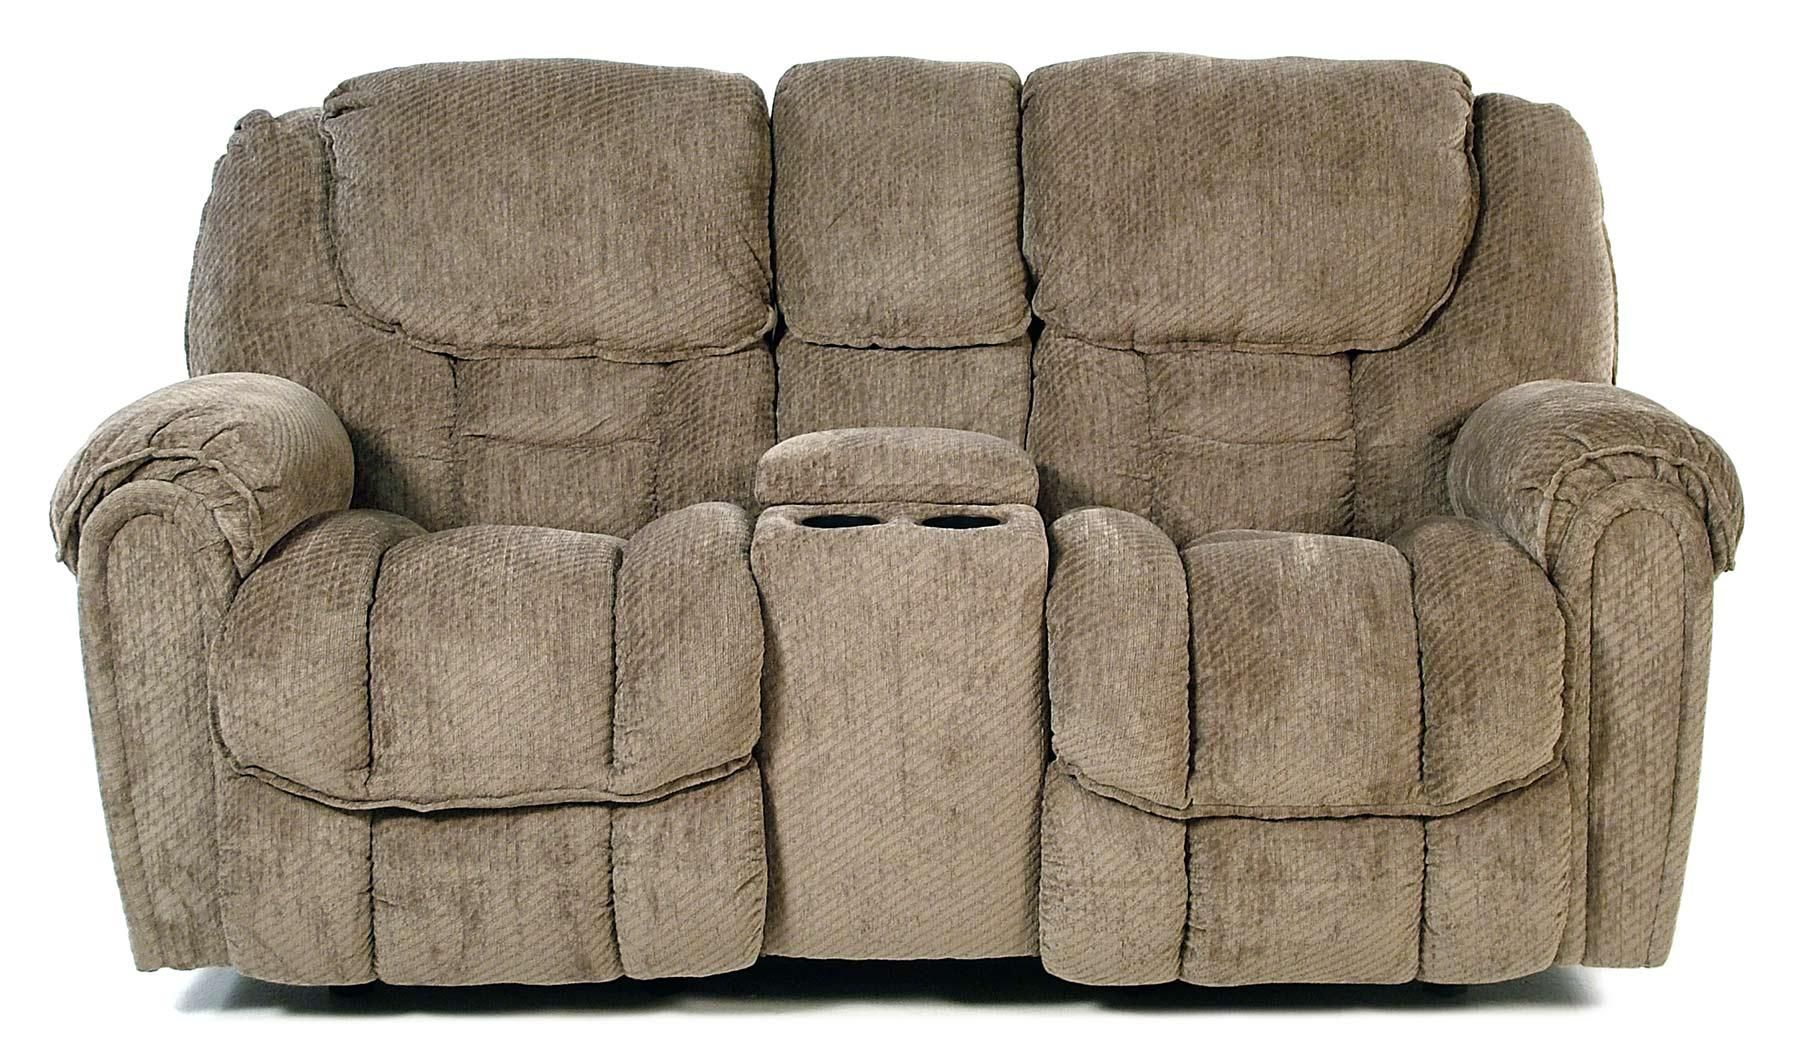 Comfort Living Baxter Casual Reclining Loveseat - Item Number: 122-23-14